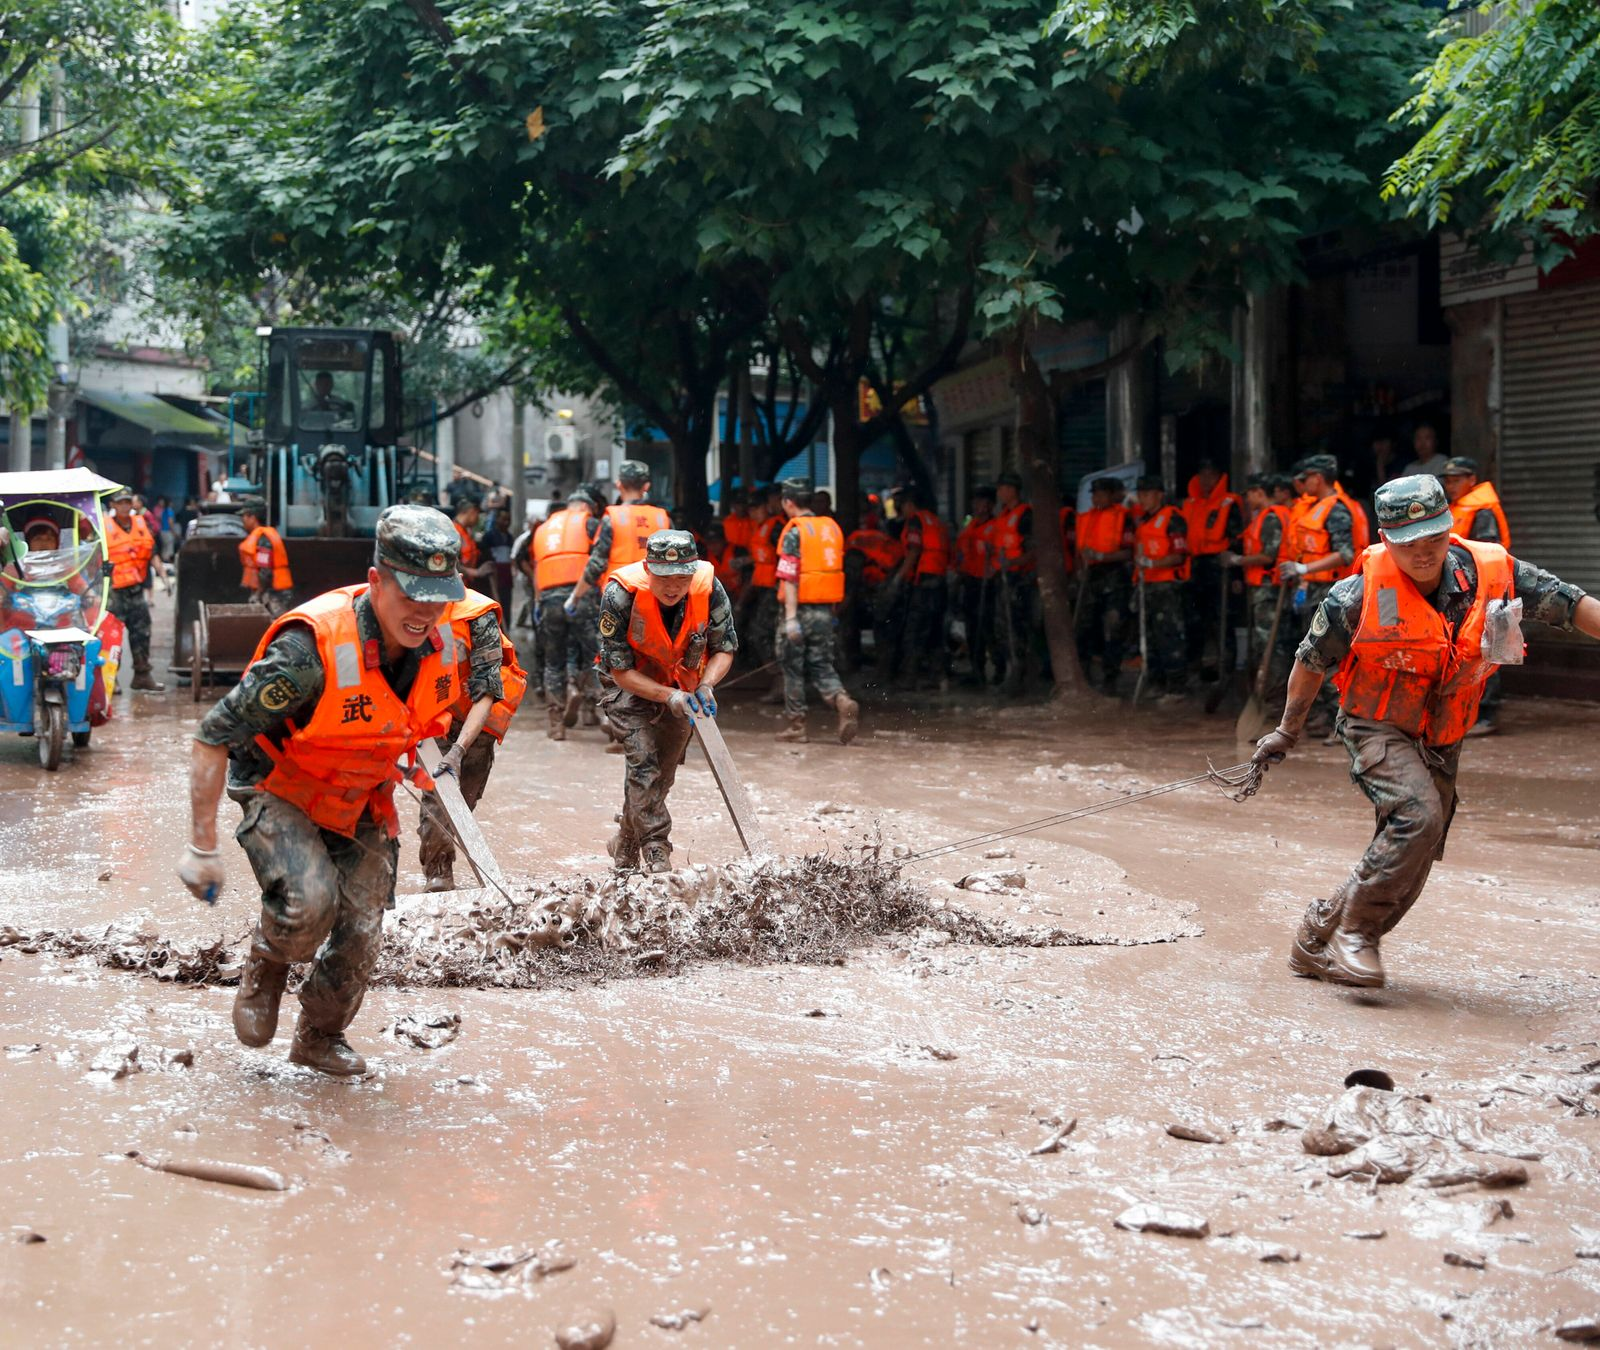 (200718) -- CHONGQING, July 18, 2020 -- Armed police clean the mud on the street in flood-hit Wuqiao subdistrict in Wan